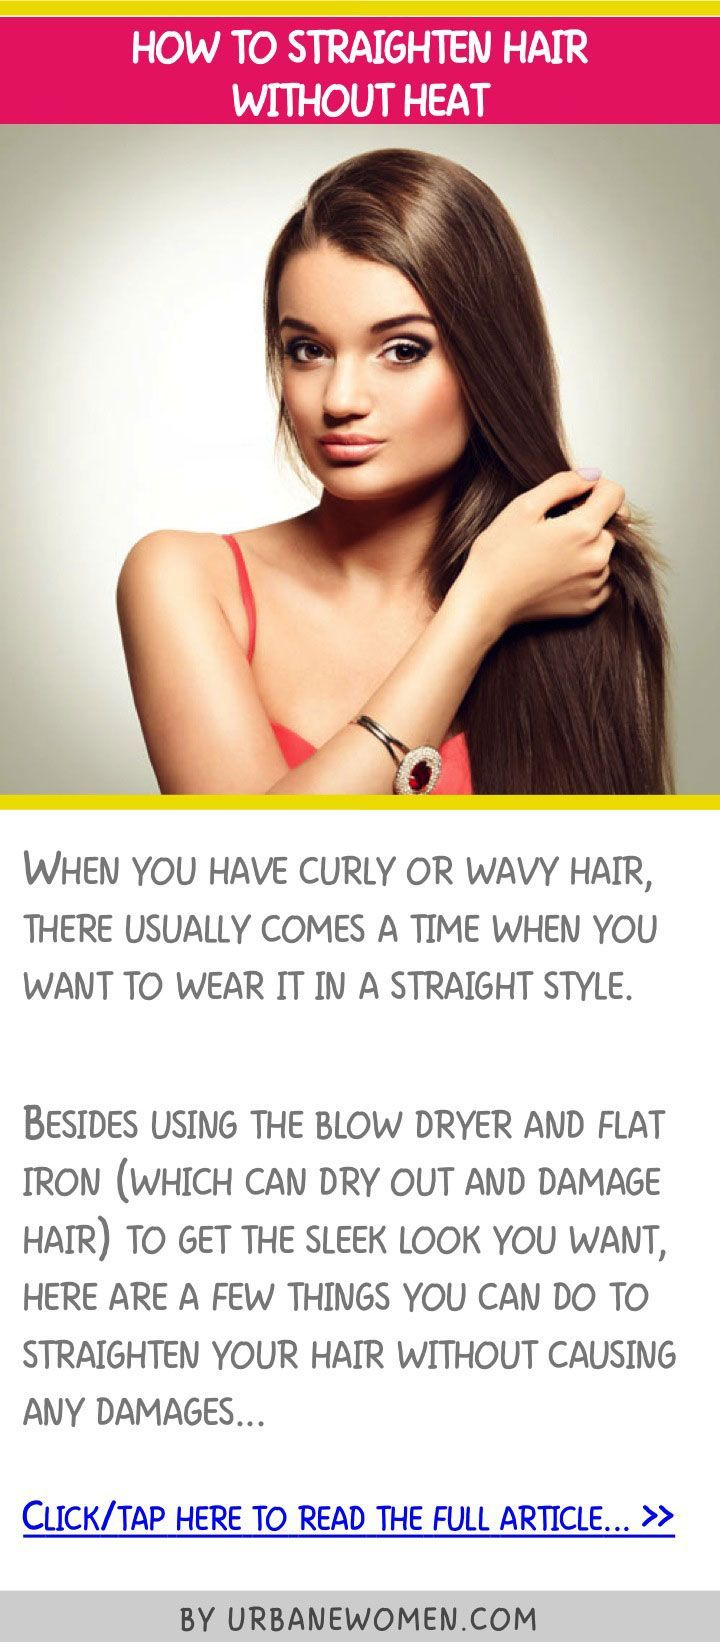 How to straighten hair without heat haircare straighten